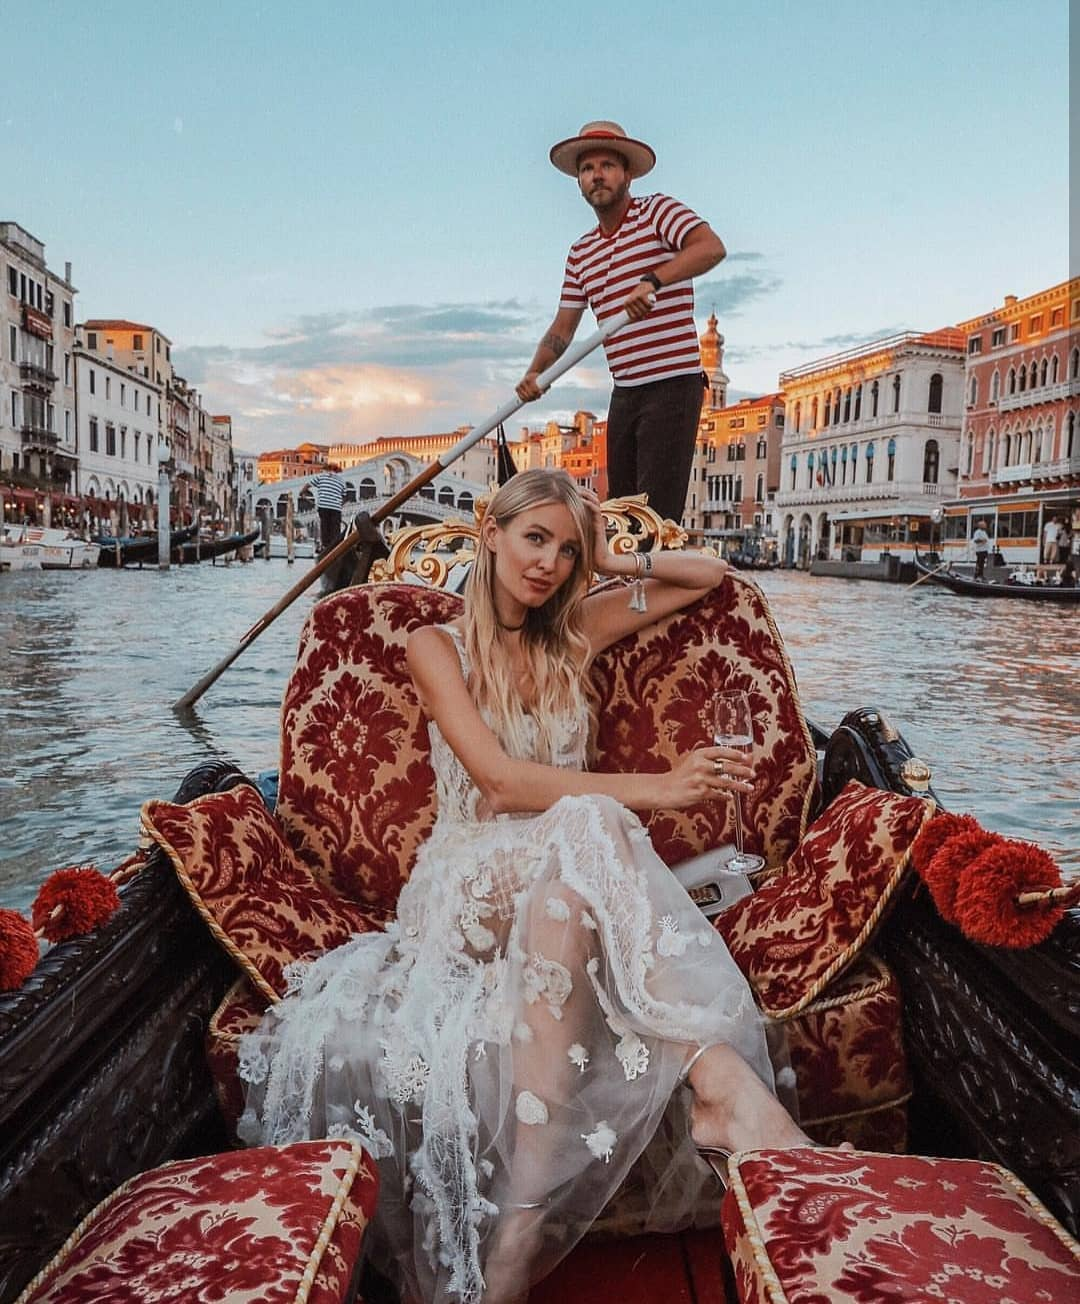 Semi-Sheer White Lace Maxi Gown For Venice Italy Trip This Summer 2019